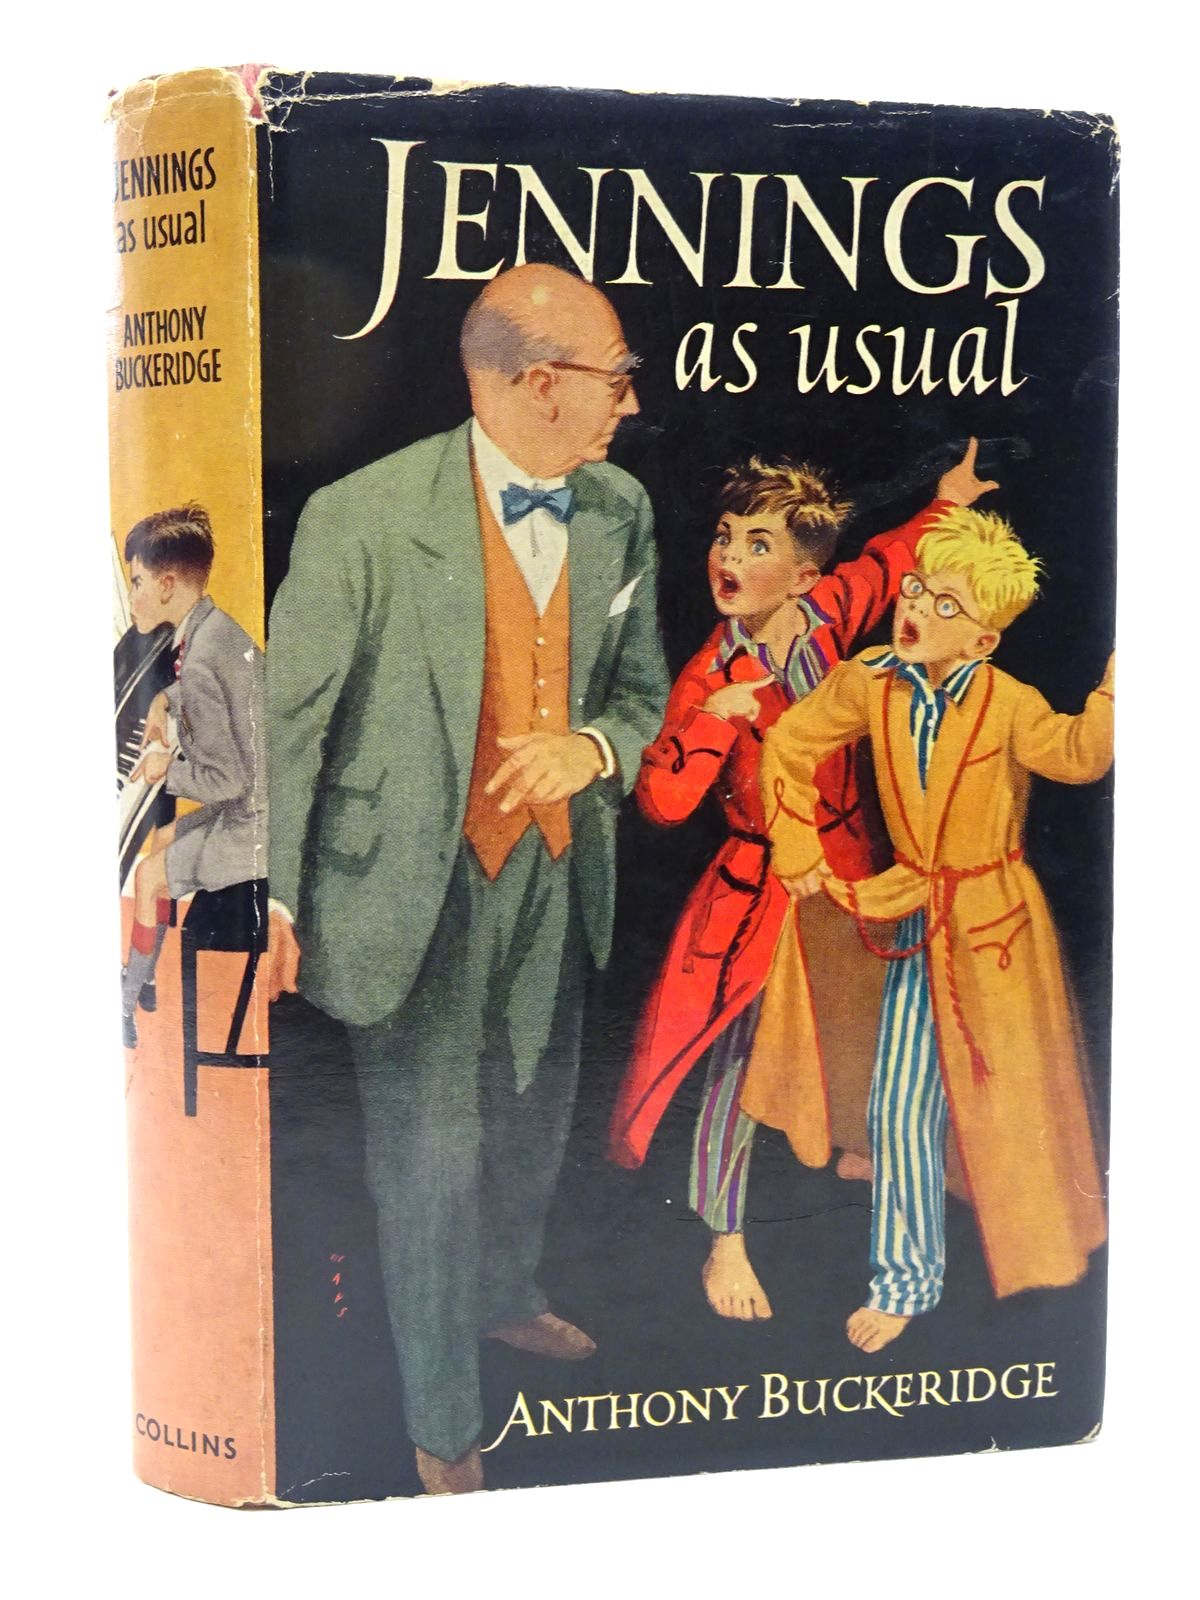 Photo of JENNINGS AS USUAL written by Buckeridge, Anthony illustrated by Mays, published by Collins (STOCK CODE: 1815585)  for sale by Stella & Rose's Books